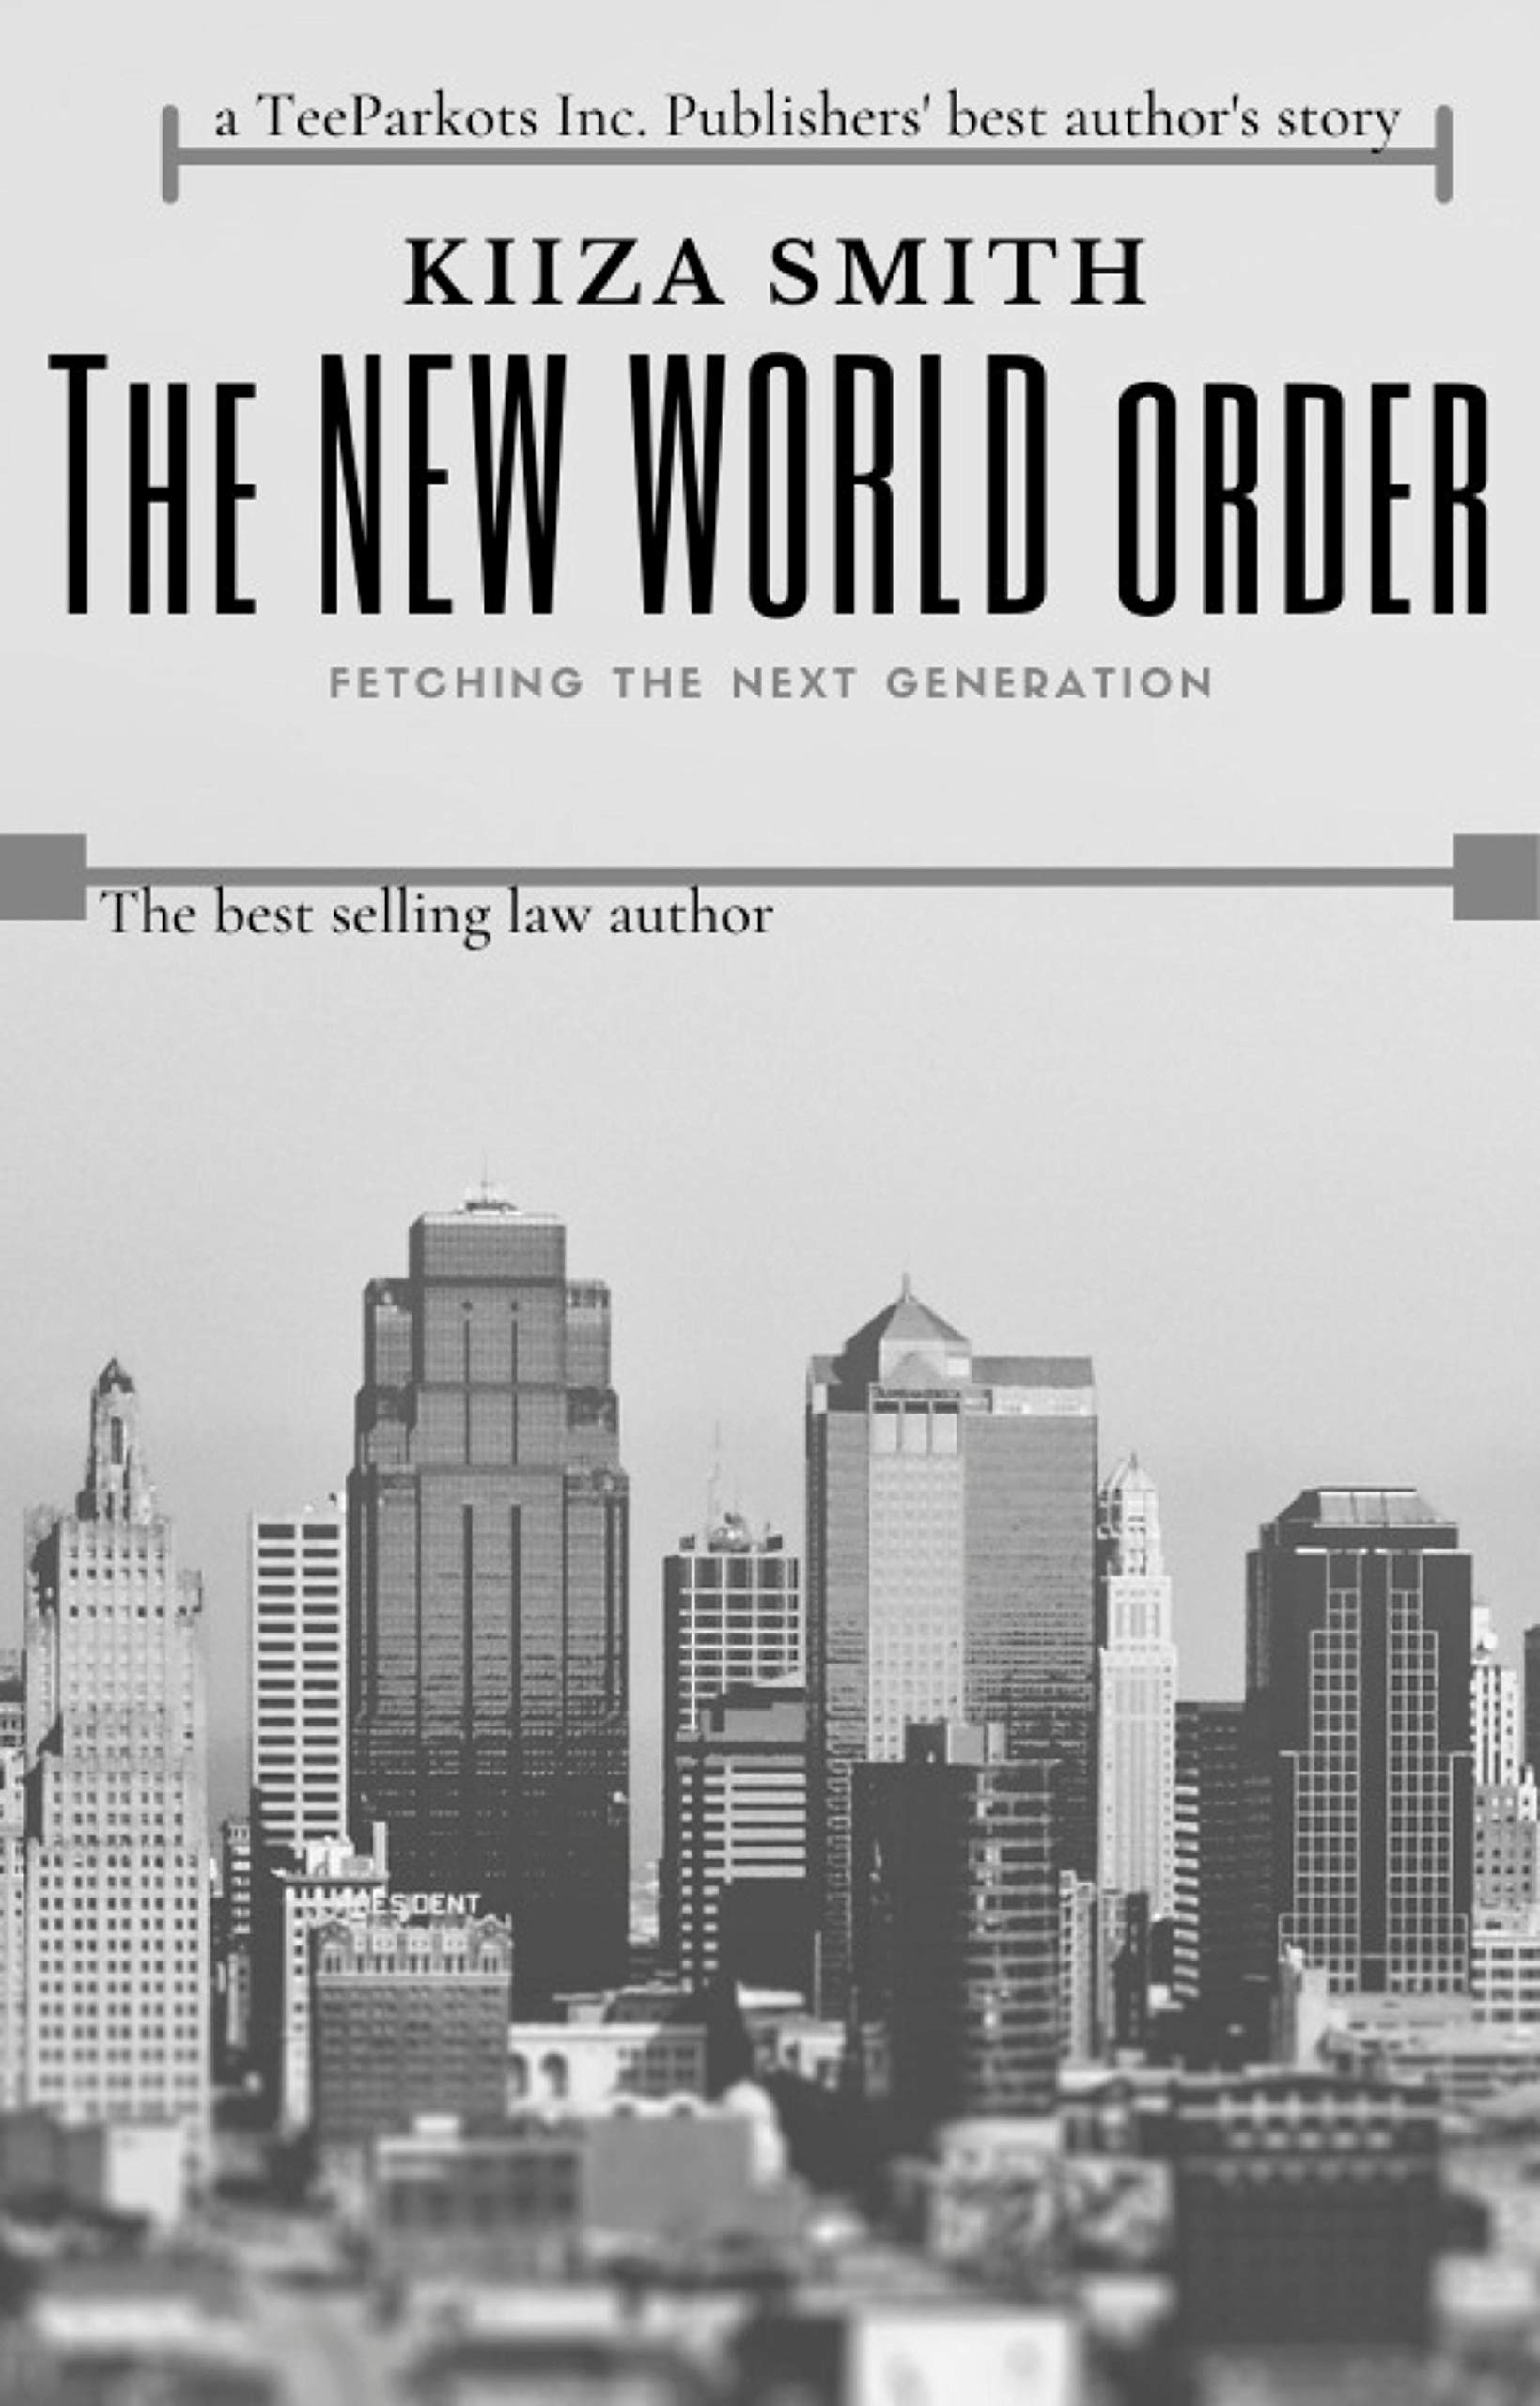 THE NEW WORLD ORDER: Fetching the New Generation